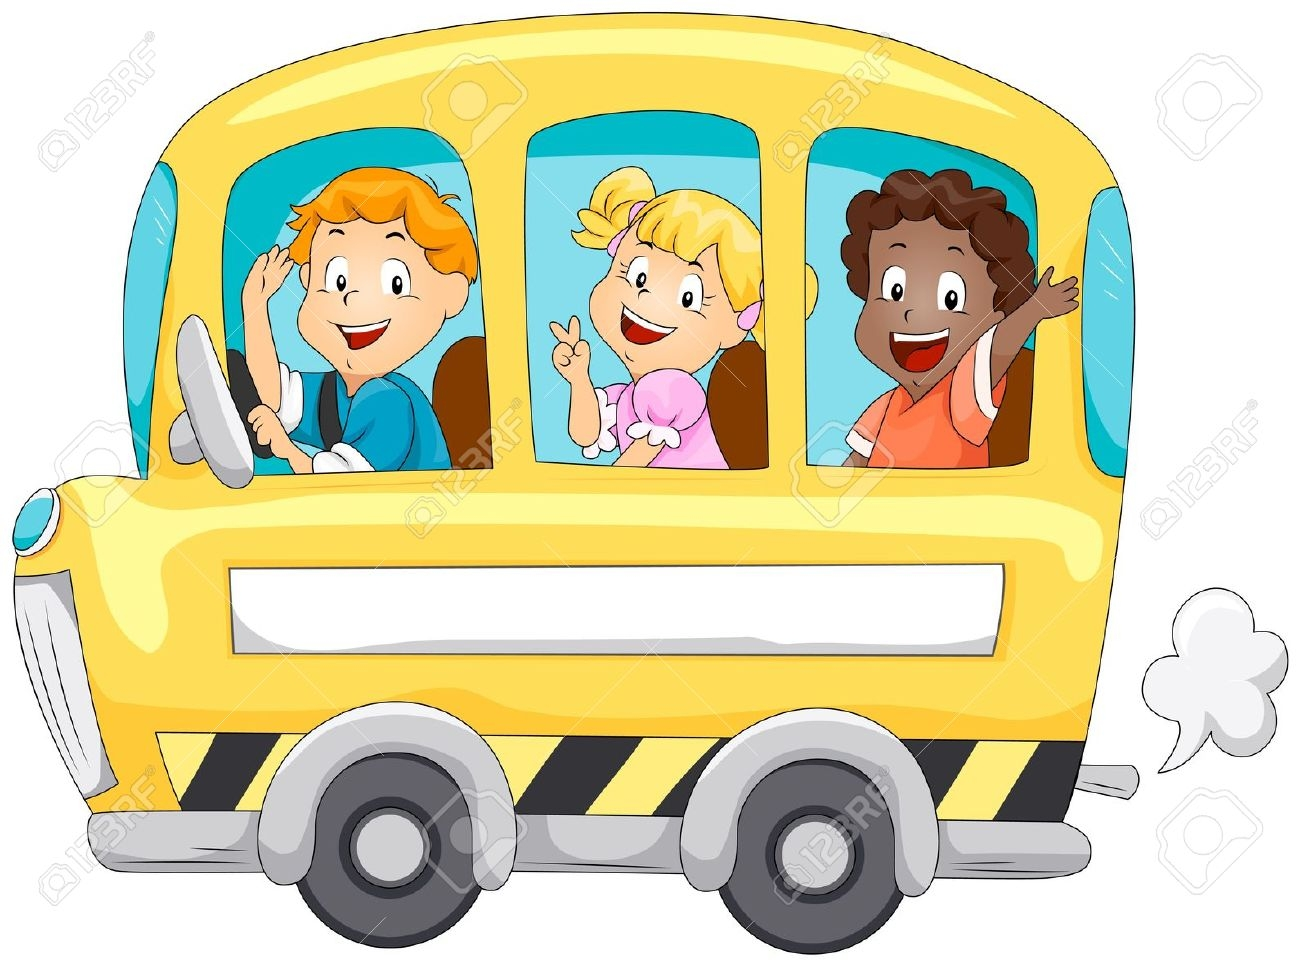 Riding The School Bus Clipart.